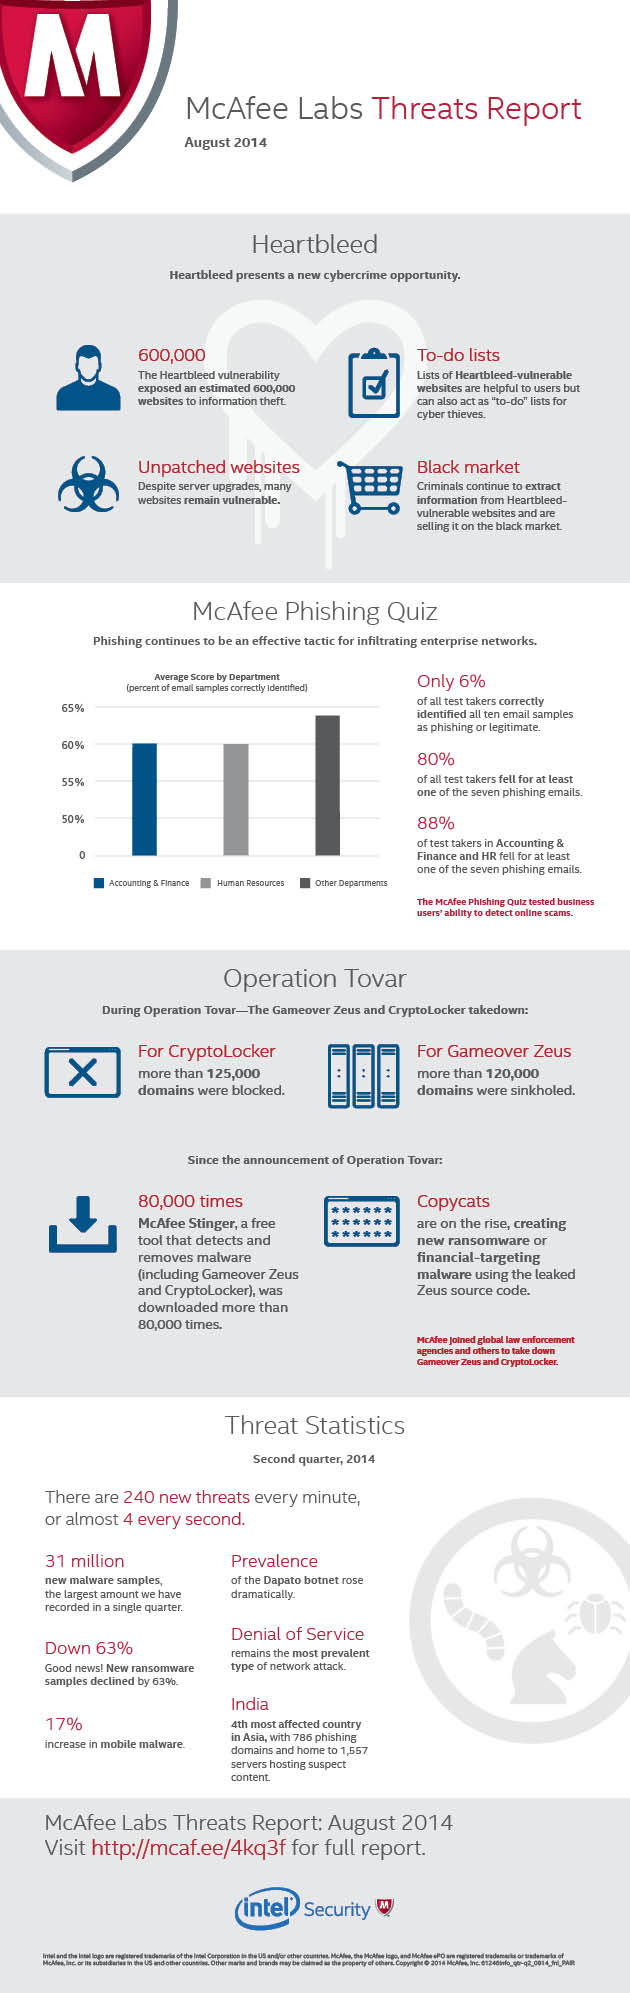 Infographic-on-McAfee-Labs-Threats-Report